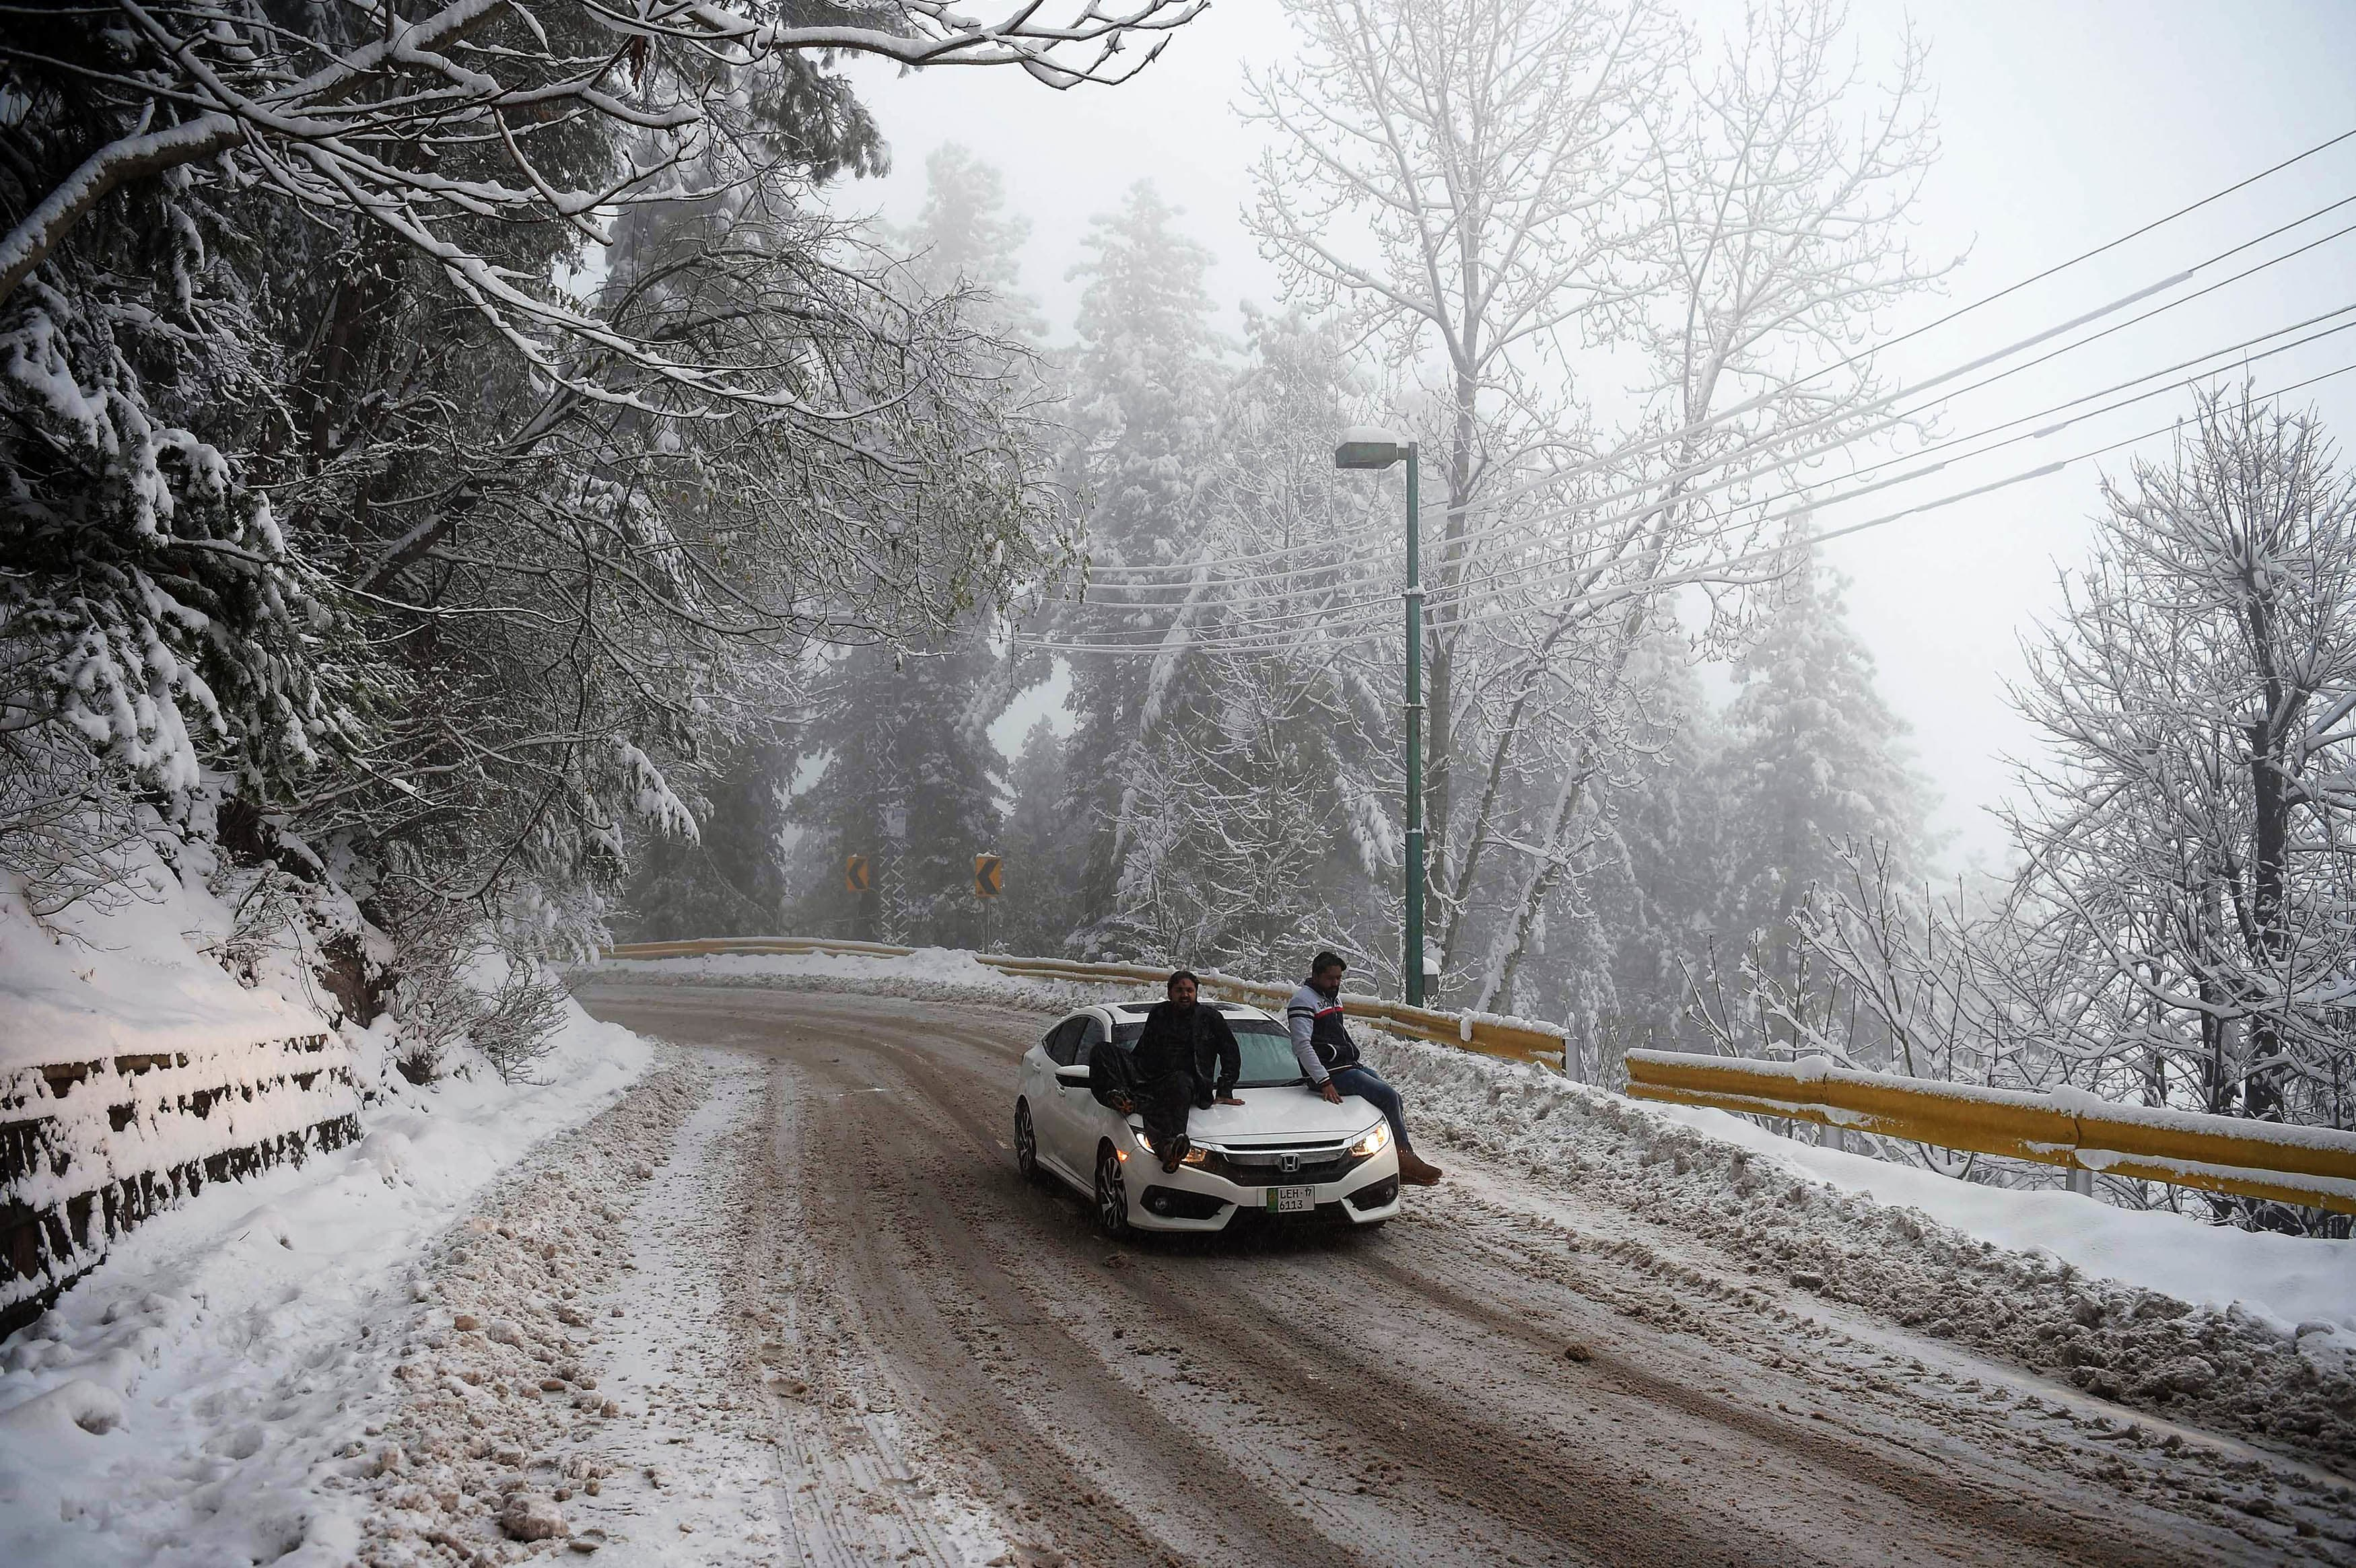 Pakistani tourists sit over a car as they cross a street covered with snow during a snowfall in Murree, some 65 km north of Islamabad, on January 5, 2019. (Photo by AAMIR QURESHI / AFP) — AFP or licensors